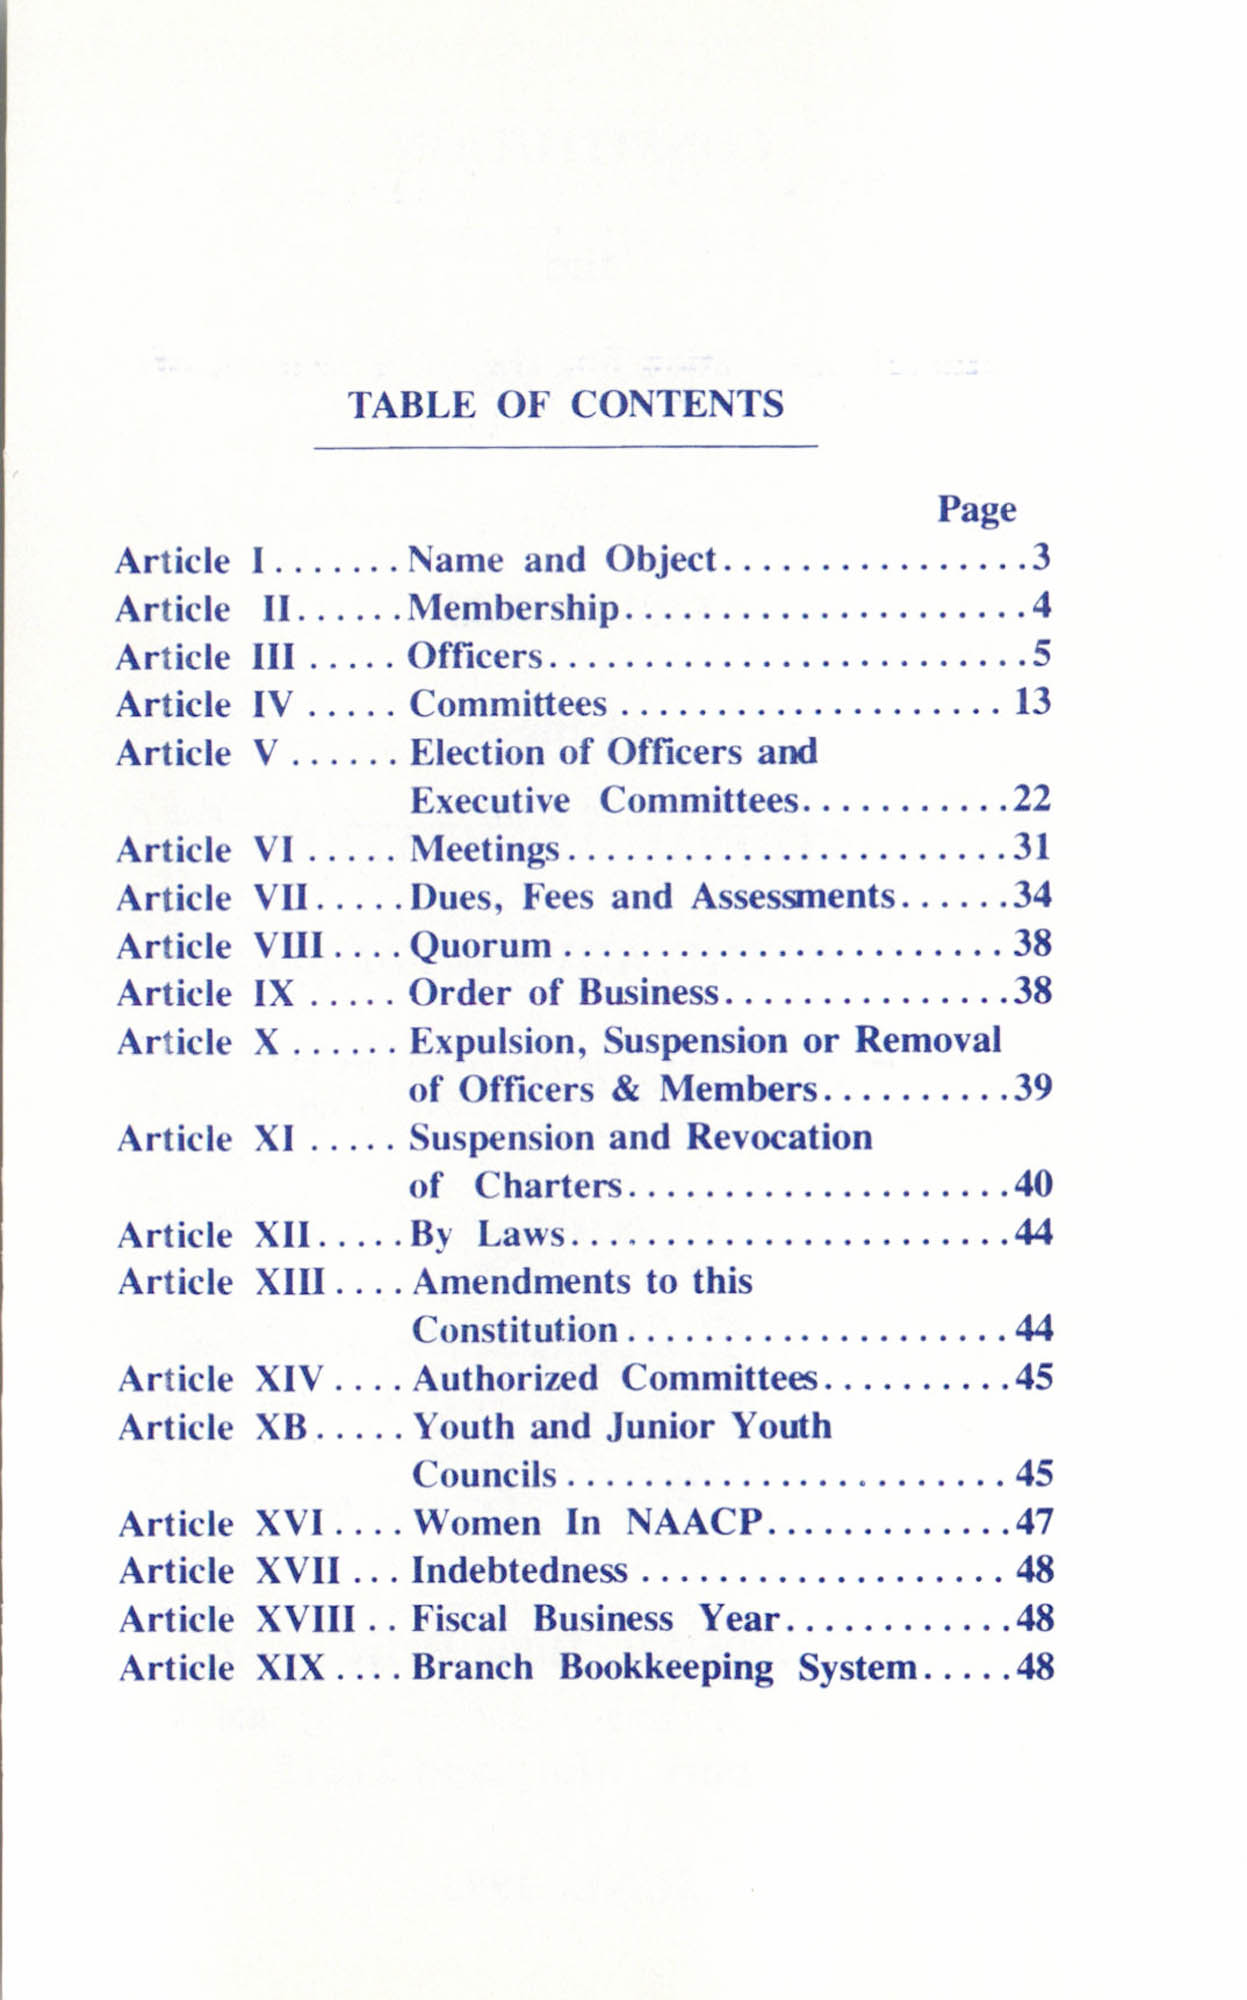 Constitution and By-Laws for Branches of the NAACP, June 1993, Table of Contents